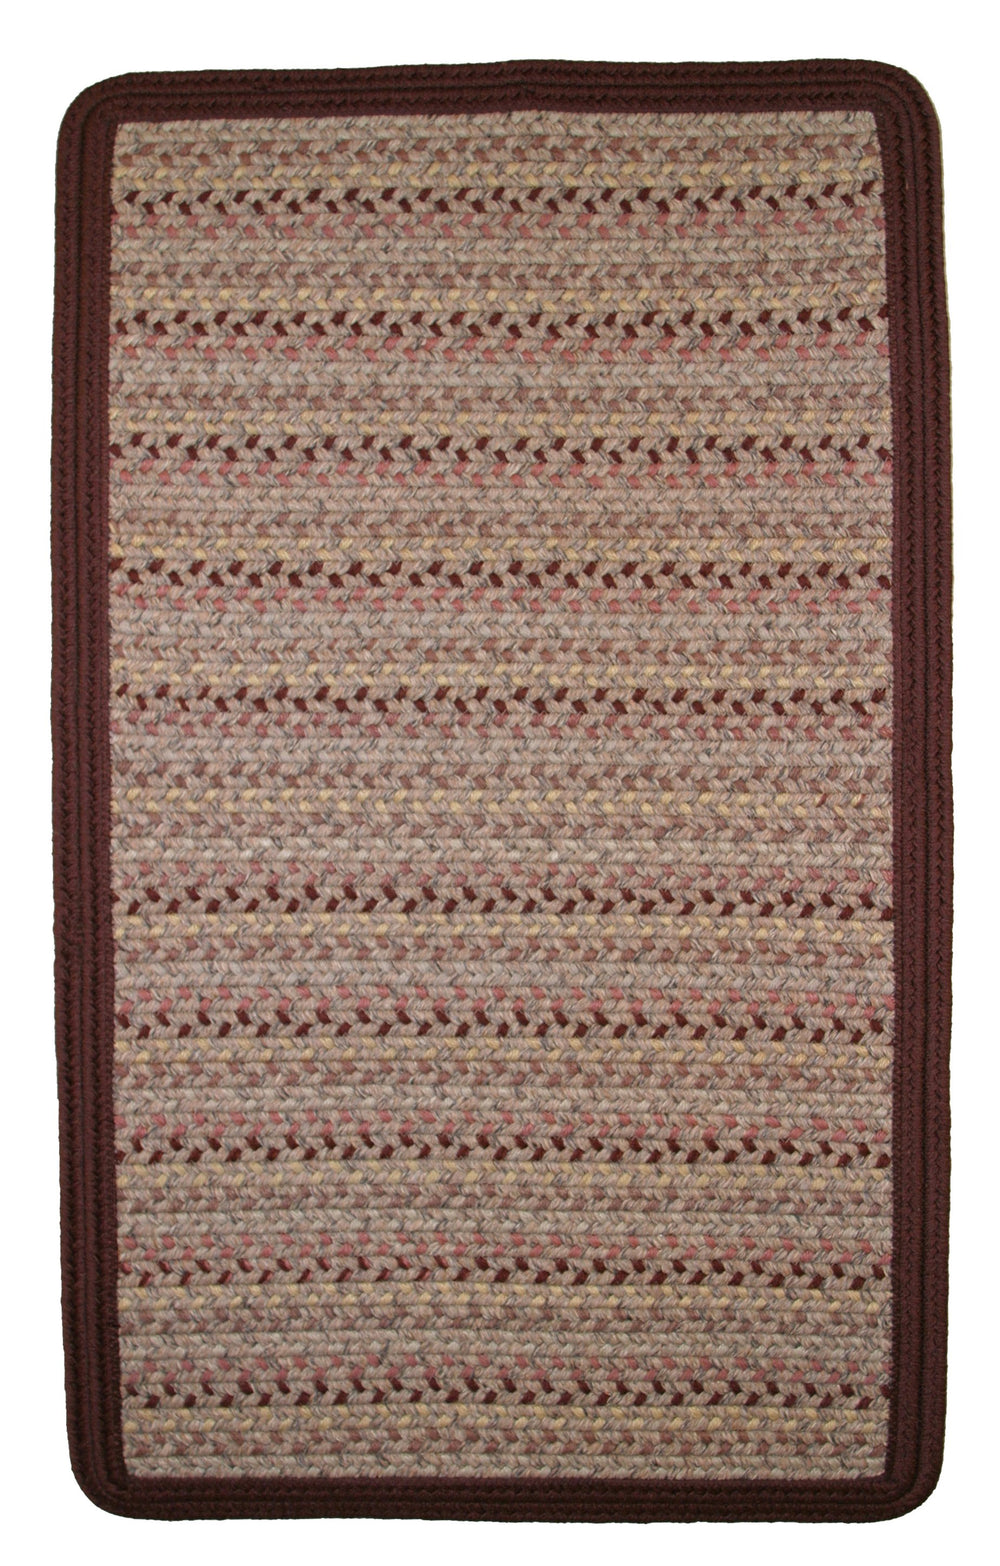 Thorndike Mills Pioneer Valley II Buckskin w/Burgundy Solids Area Rug